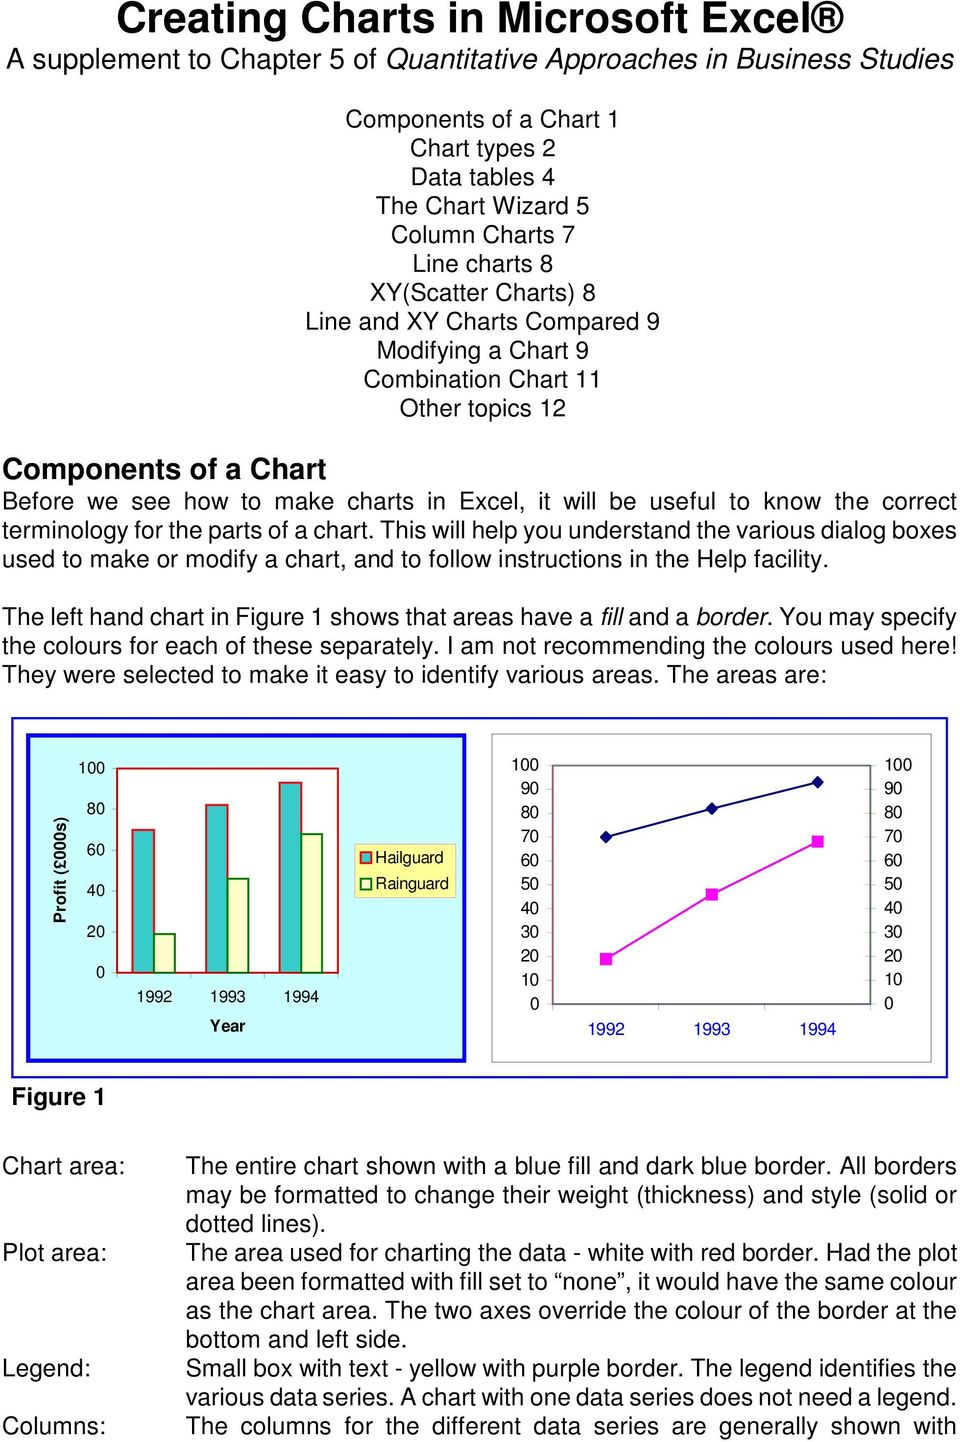 to know the correct terminology for the parts of a chart. This will help you understand the various dialog boxes used to make or modify a chart, and to follow instructions in the Help facility.